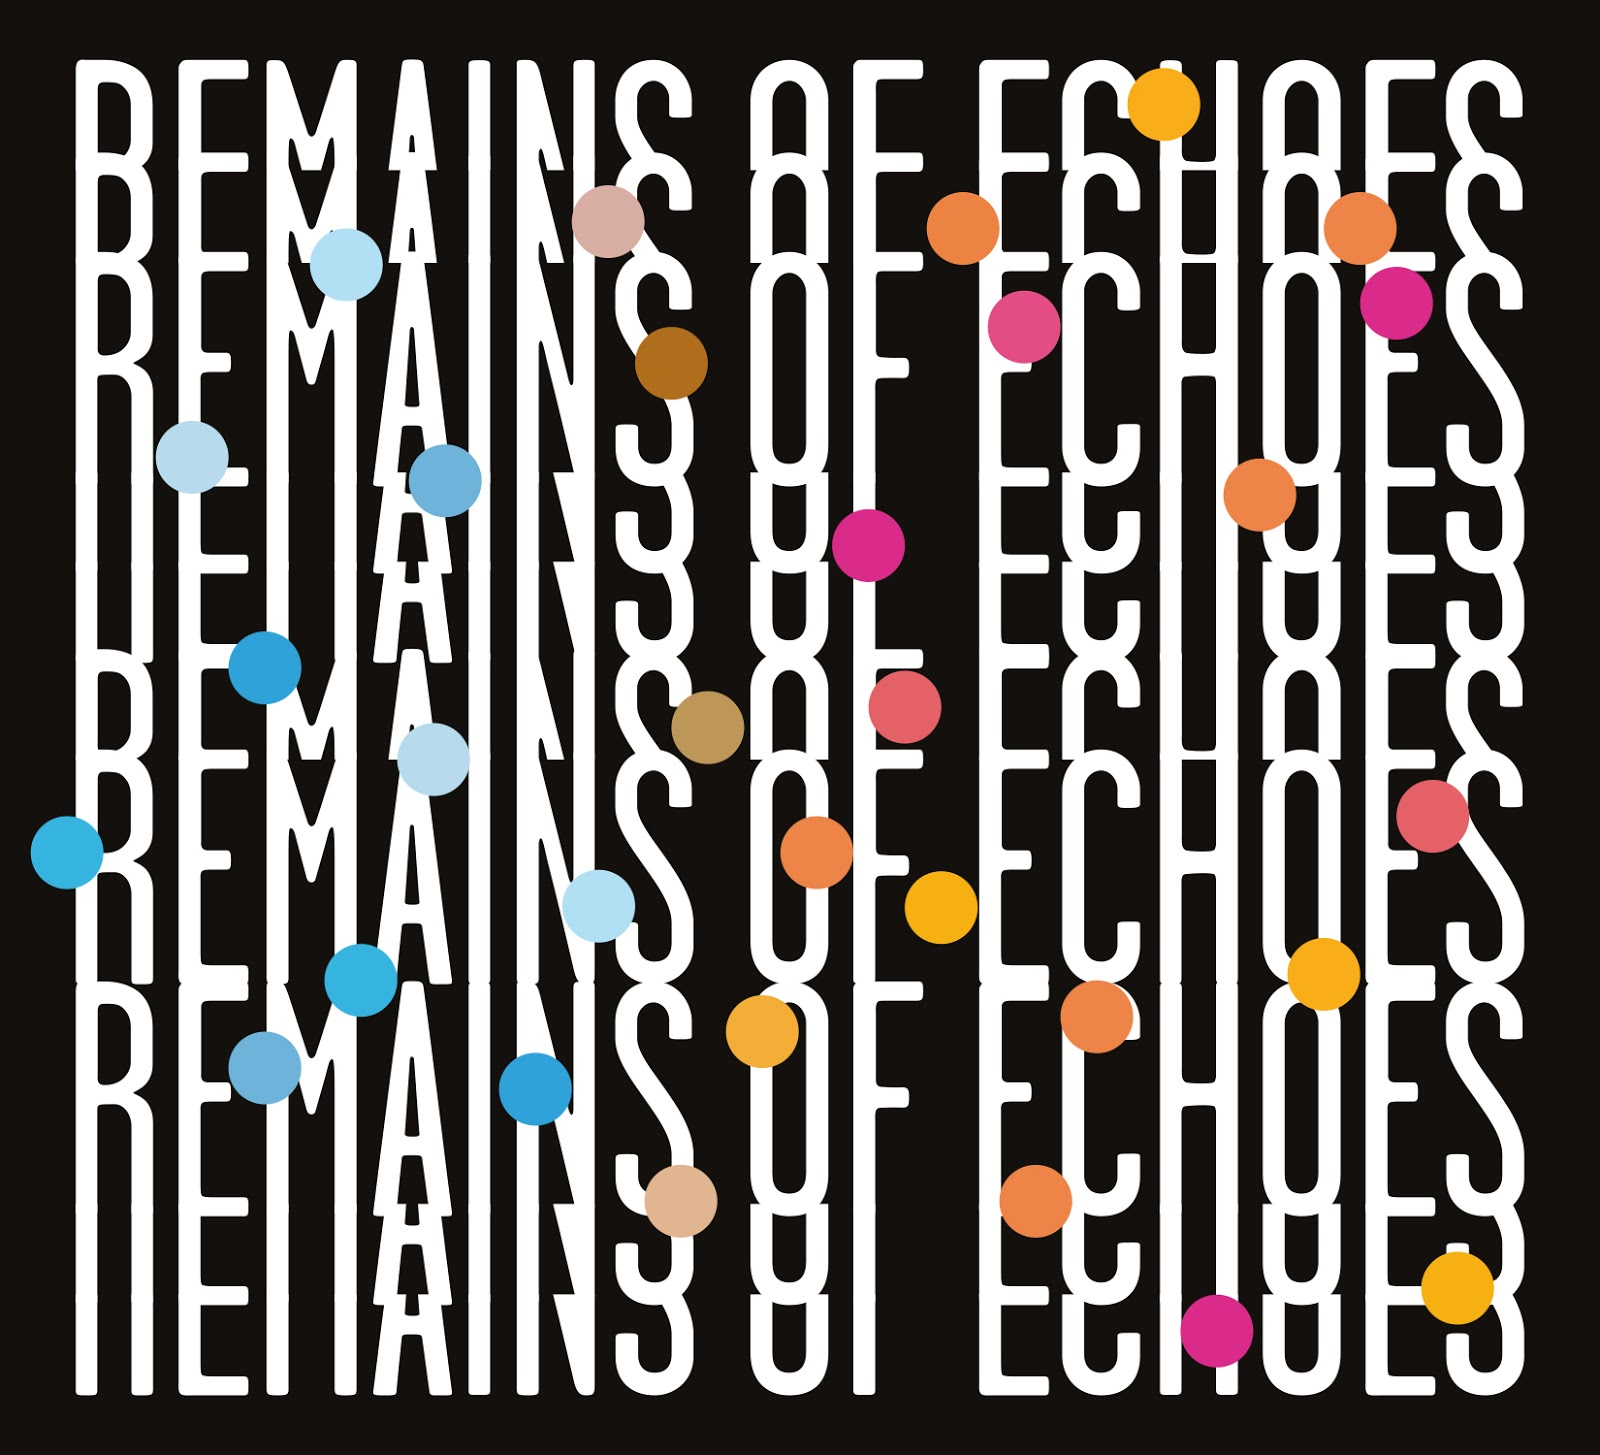 "REVIEW: Eric Hofbauer and Dylan Jack's ""Remains of Echoes"" Reviewed by Musical Memoirs"